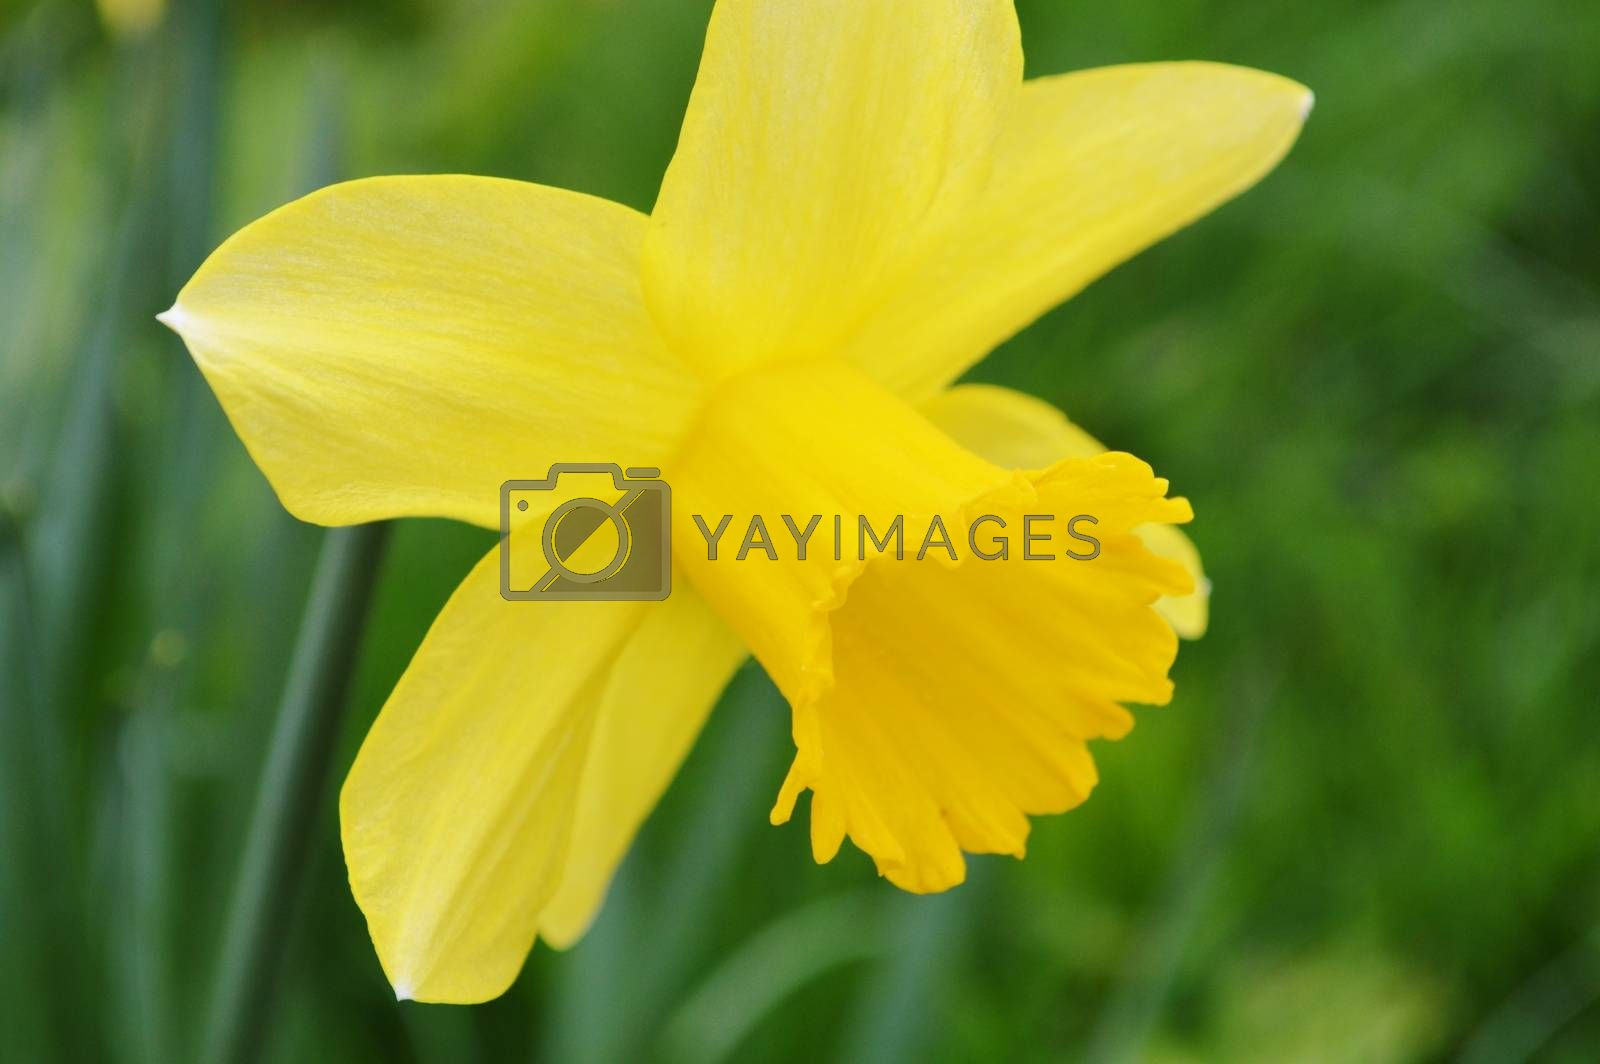 Royalty free image of Daffodil. by paulst